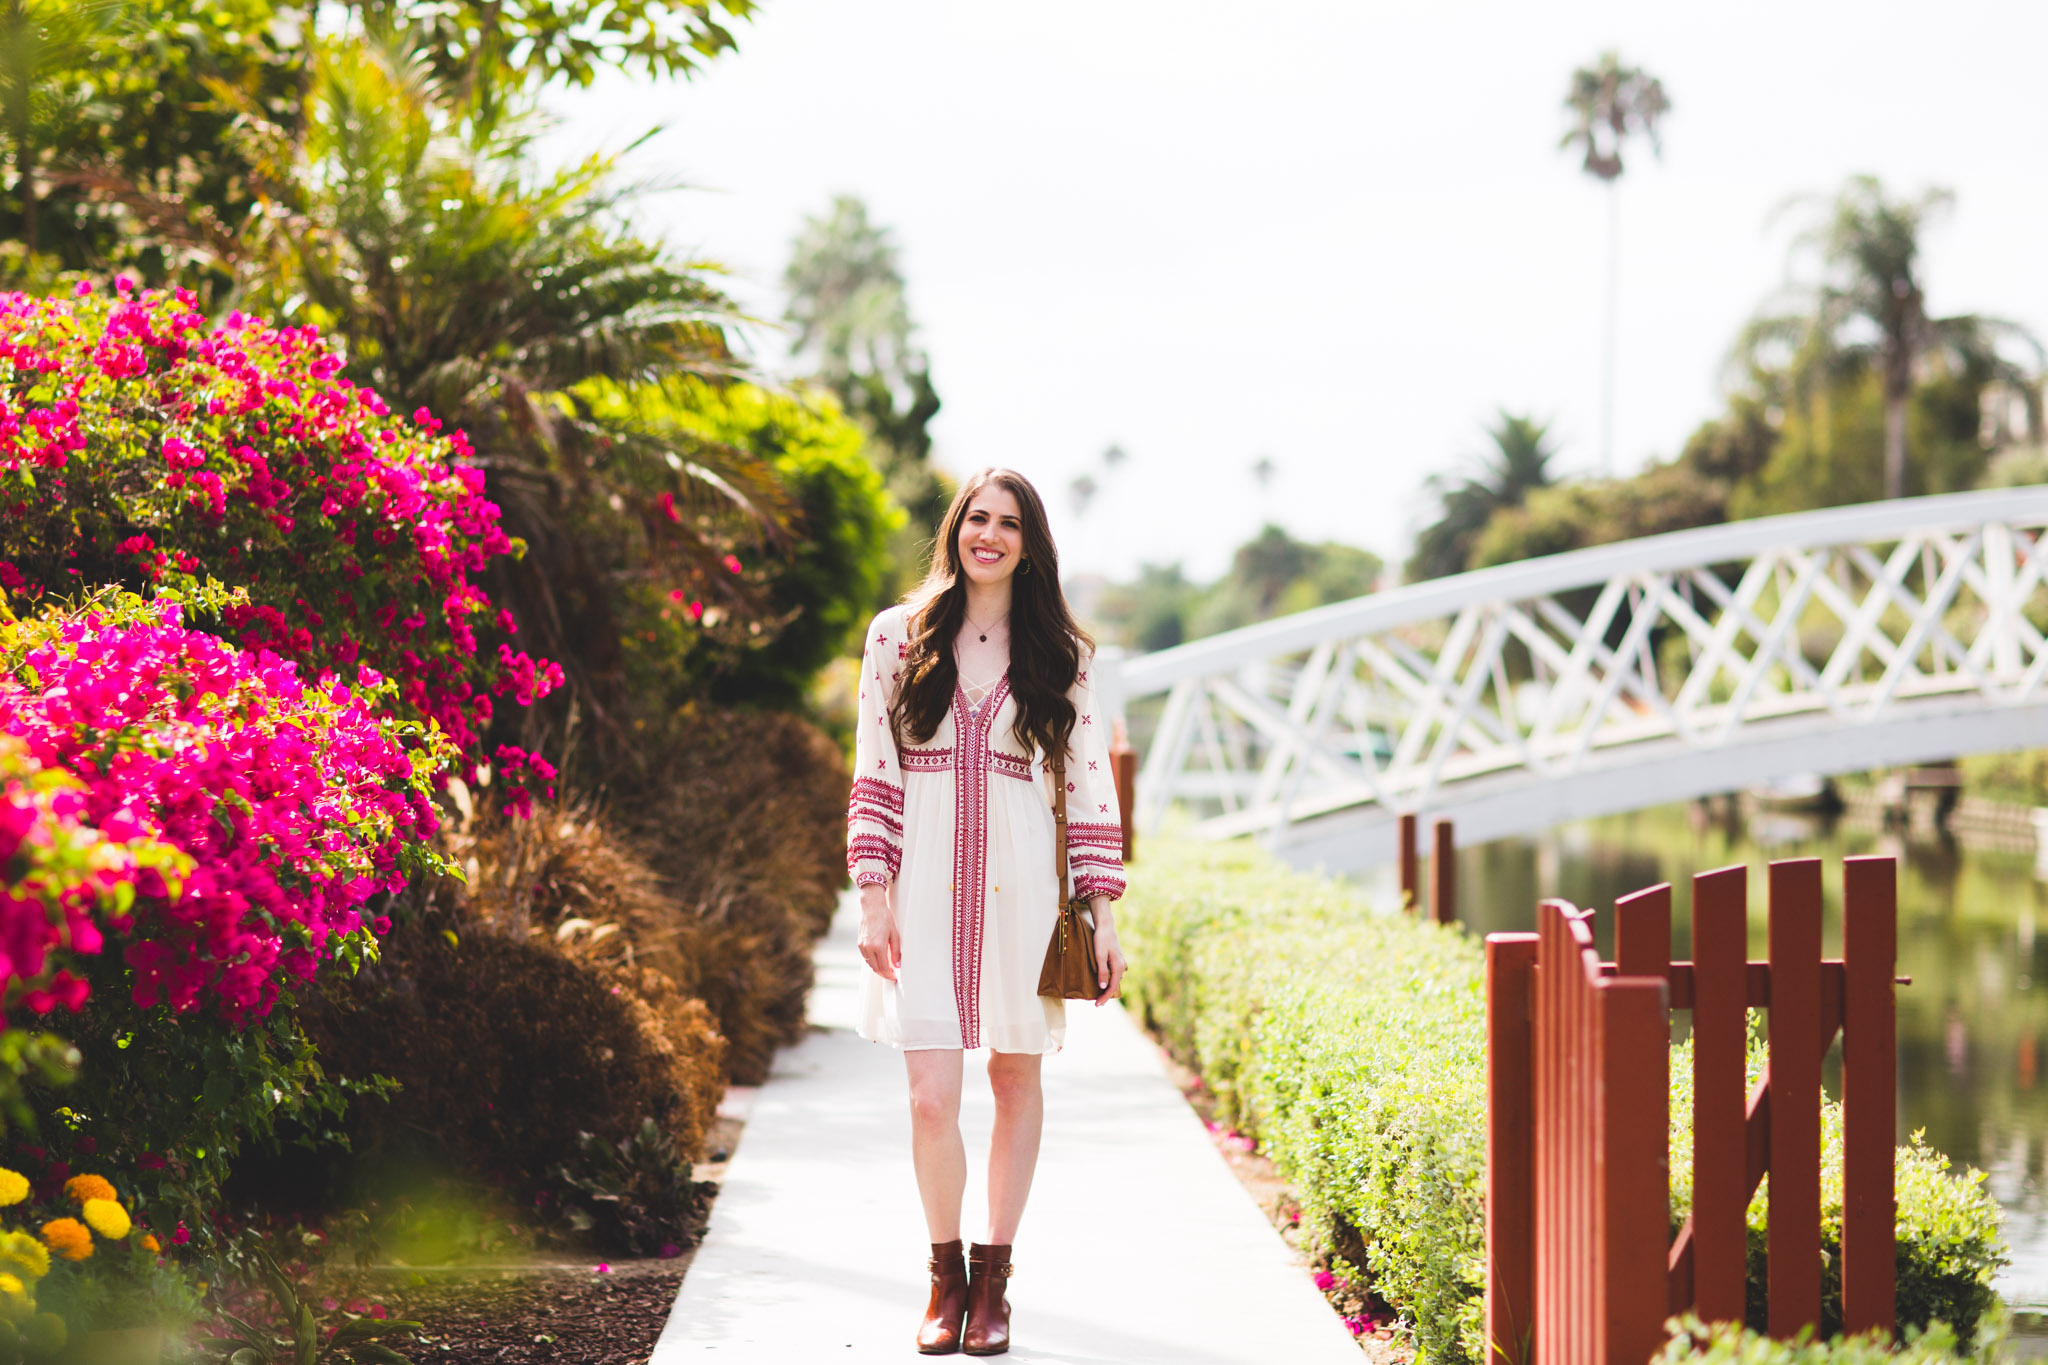 Venice Canals Los Angeles fashion blogger